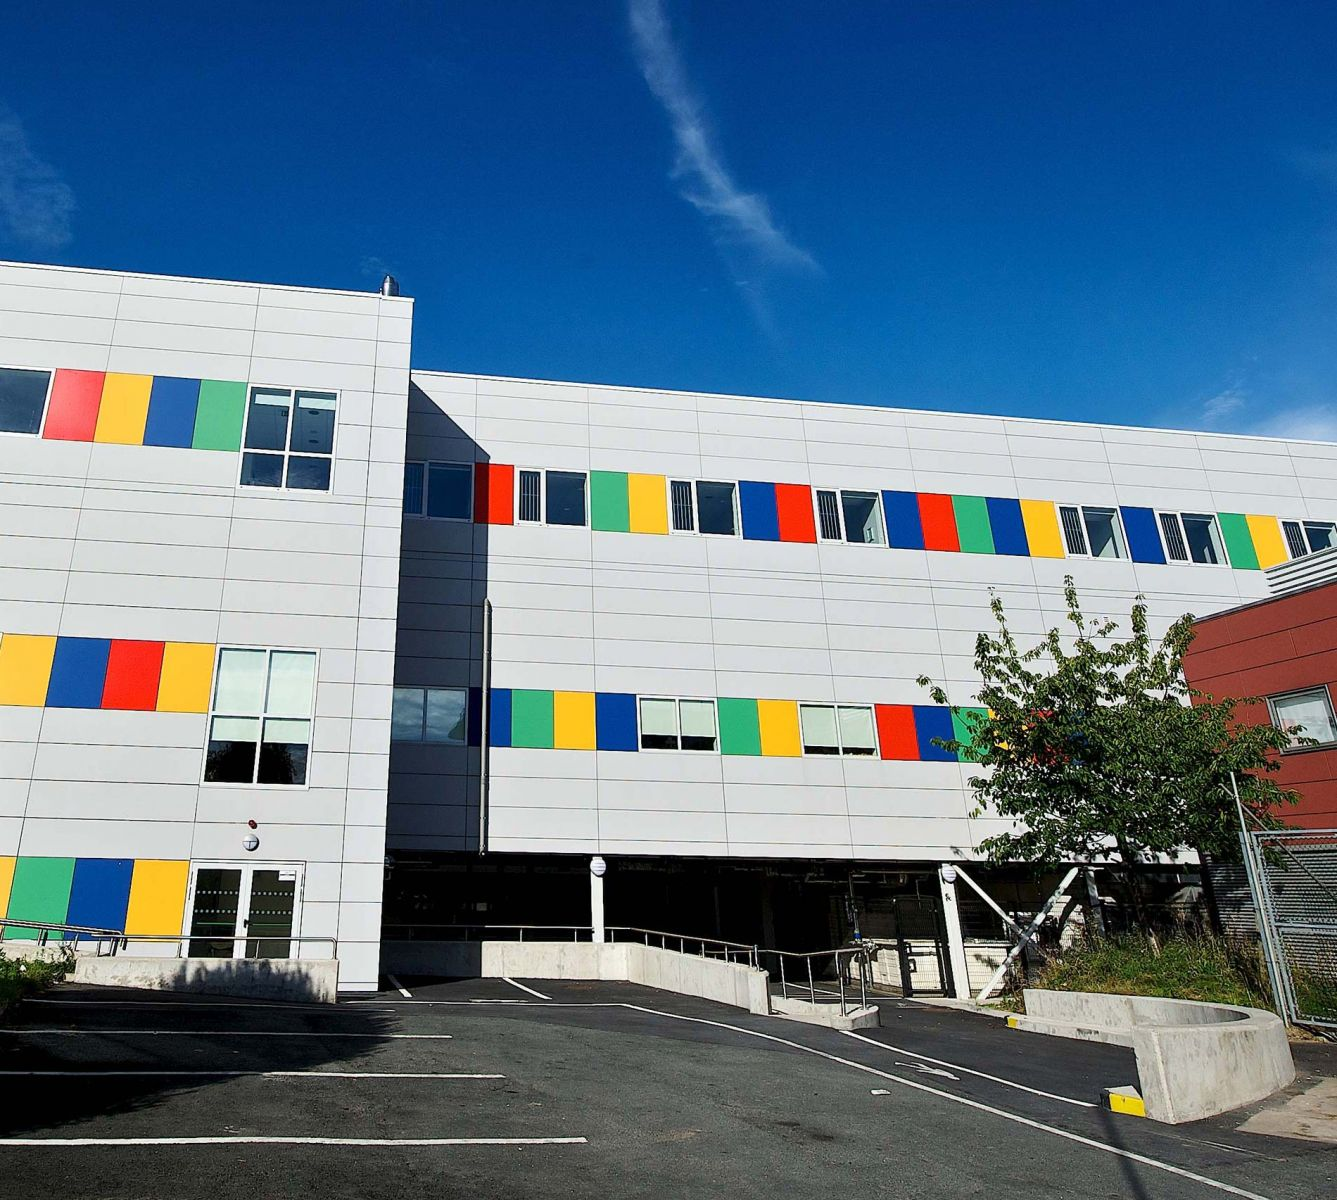 Our Lady's Children's Hospital, Crumlin